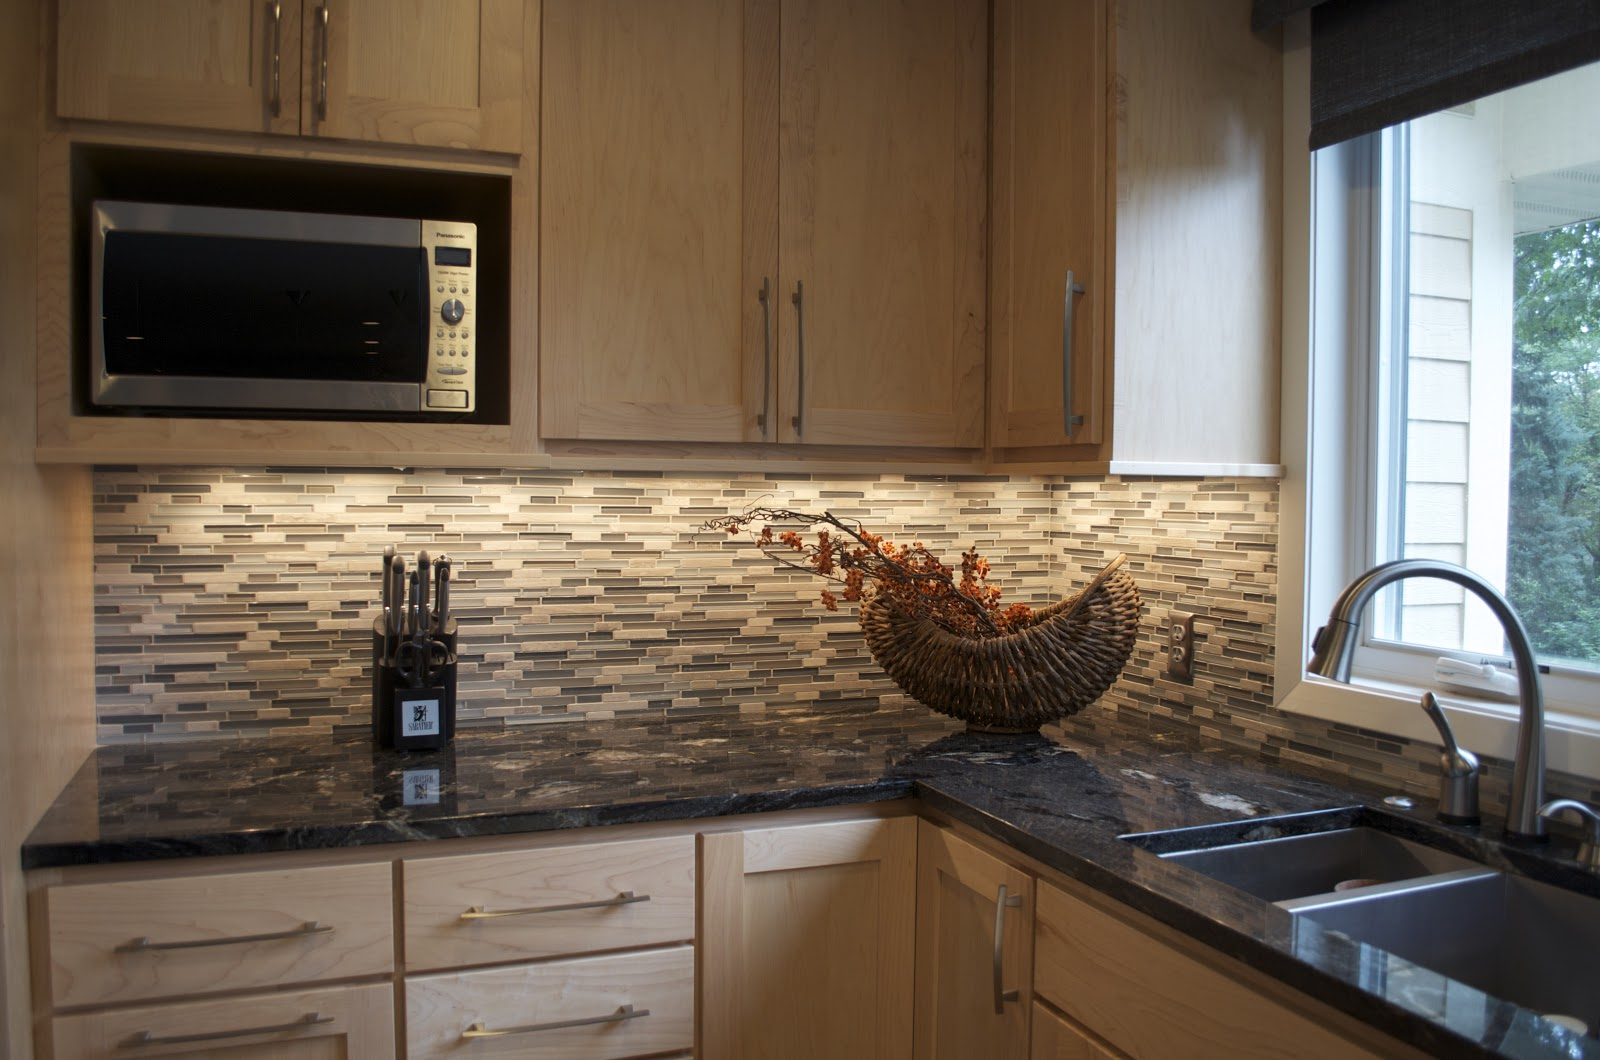 The captivating Beautiful kitchen counter backsplash image